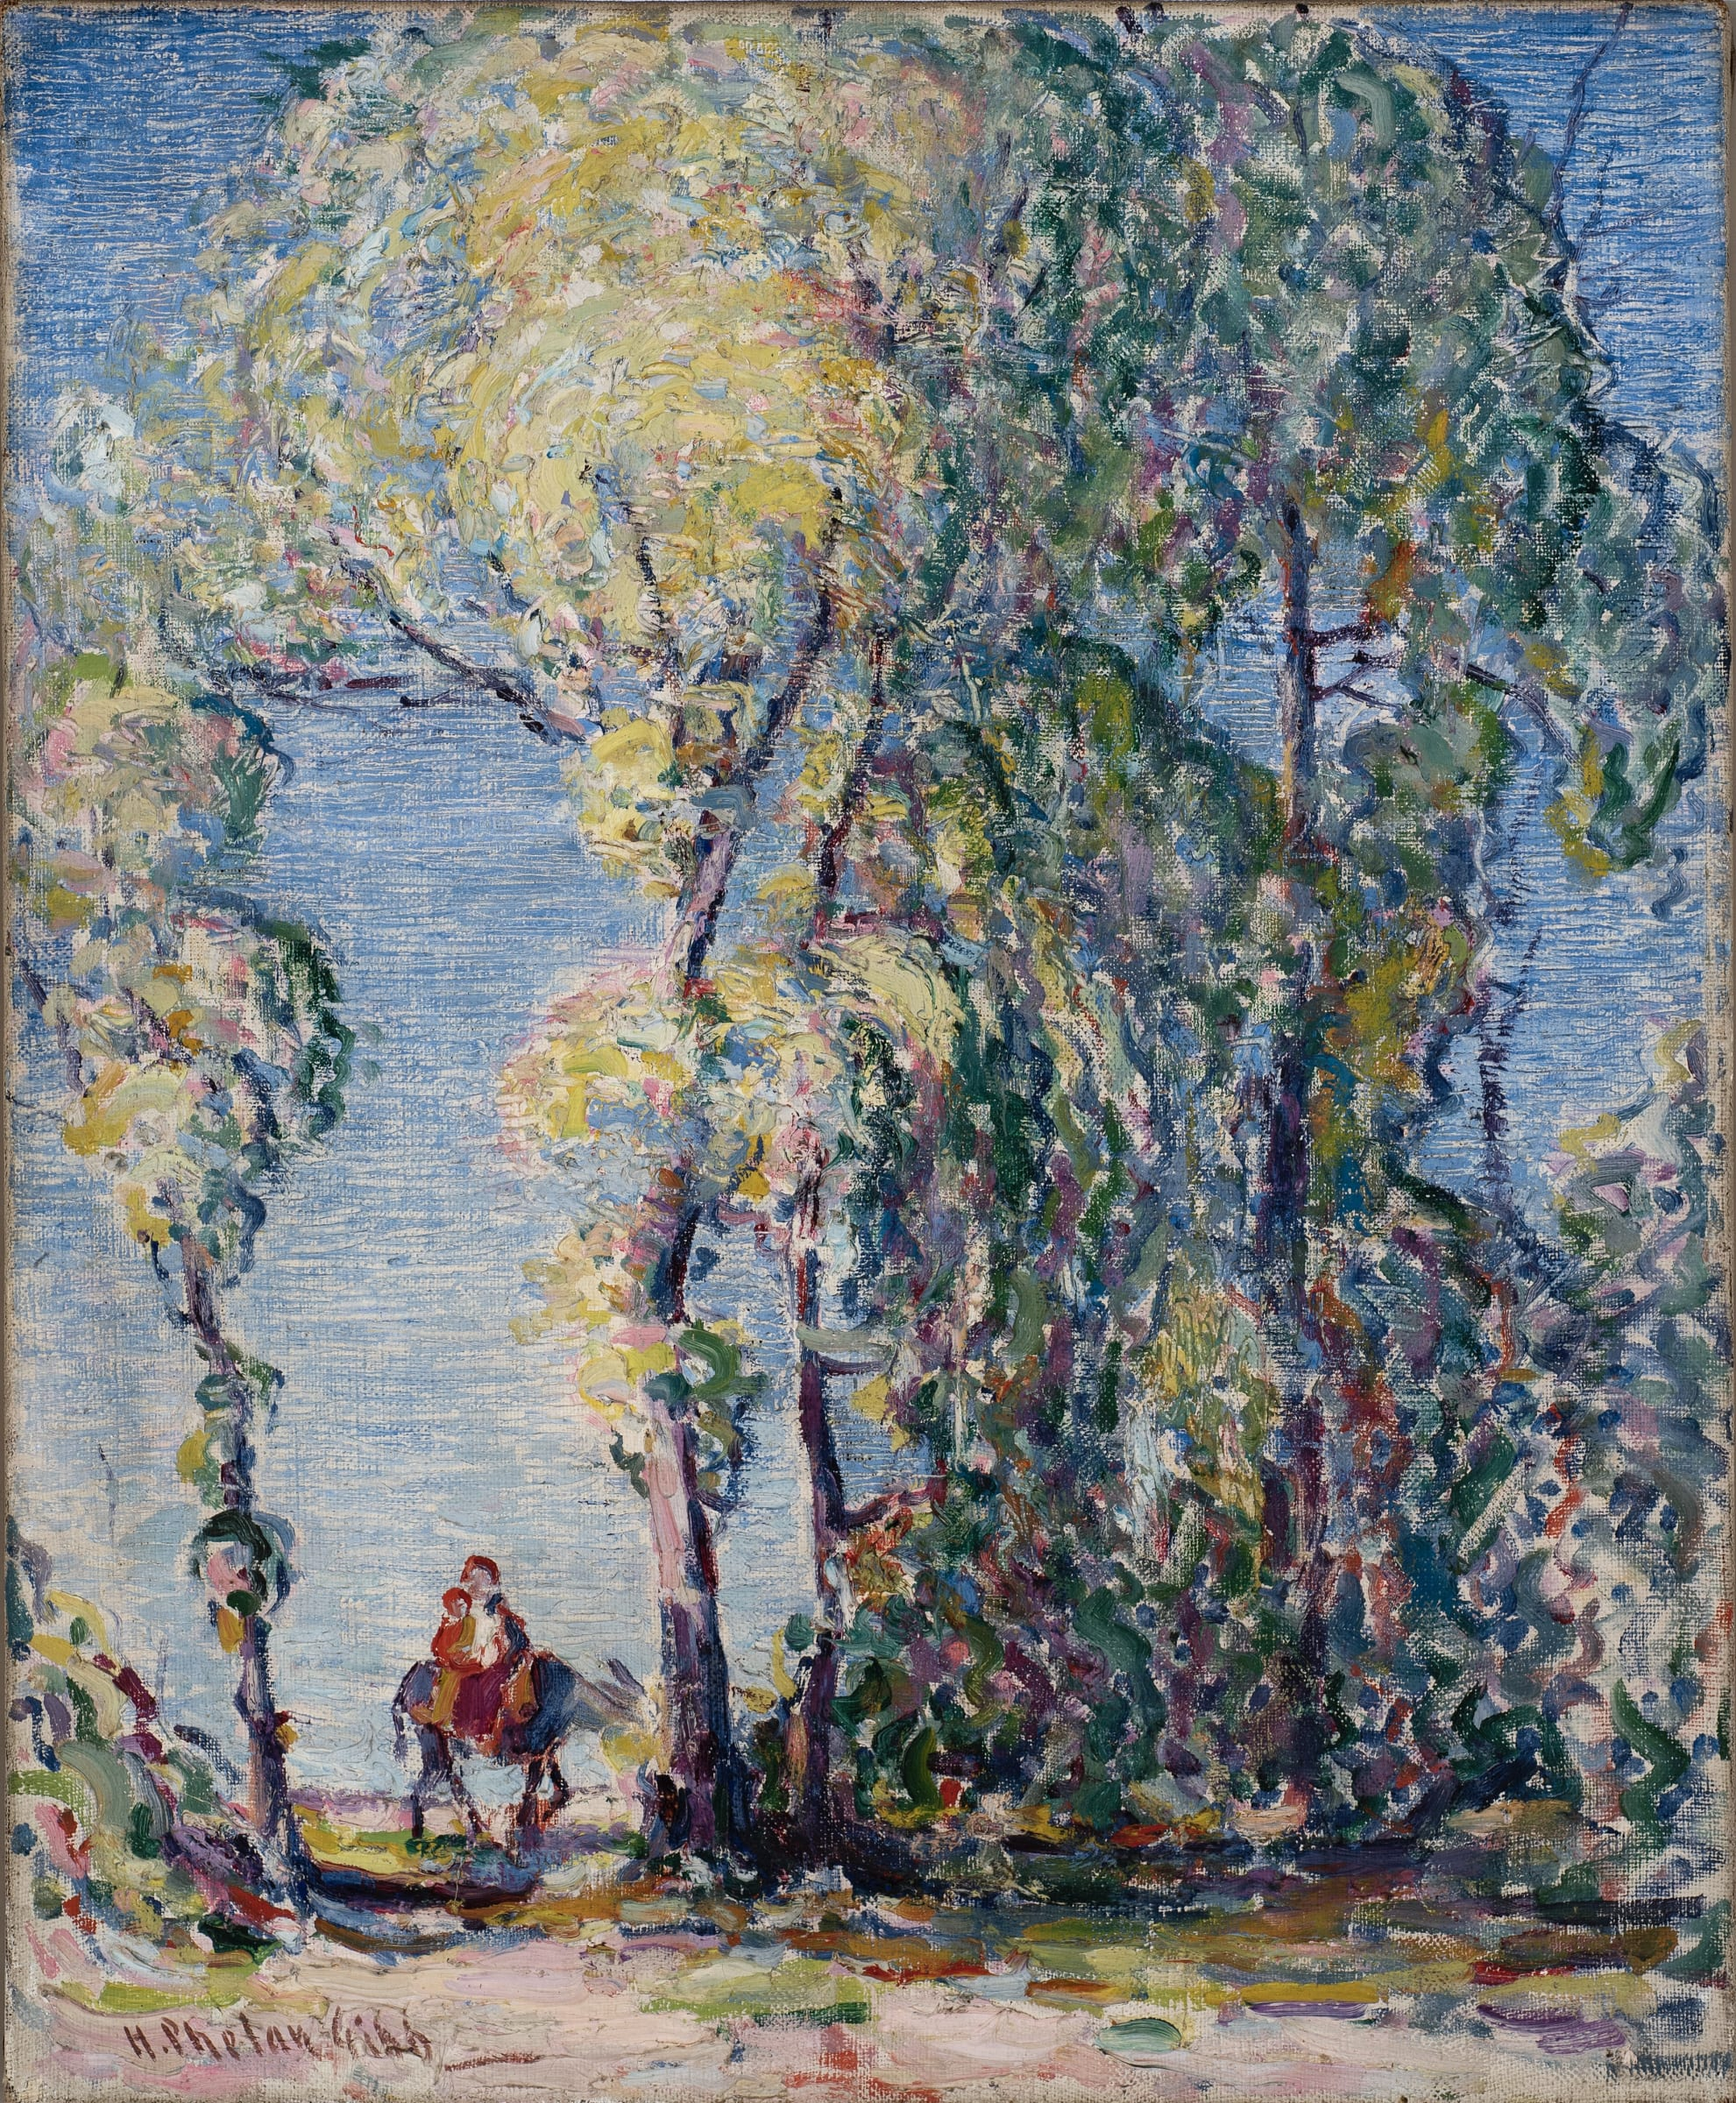 """<span class=""""link fancybox-details-link""""><a href=""""/exhibitions/27/works/artworks141/"""">View Detail Page</a></span><div class=""""artist""""><strong>Harry Phelan Gibb</strong></div> 1870 - 1948<div class=""""title""""><em>Spain</em>, c.1906-10</div><div class=""""signed_and_dated"""">Signed and titled on reverse</div><div class=""""medium"""">oil on canvas</div><div class=""""dimensions"""">61 x 50 cm</div>"""